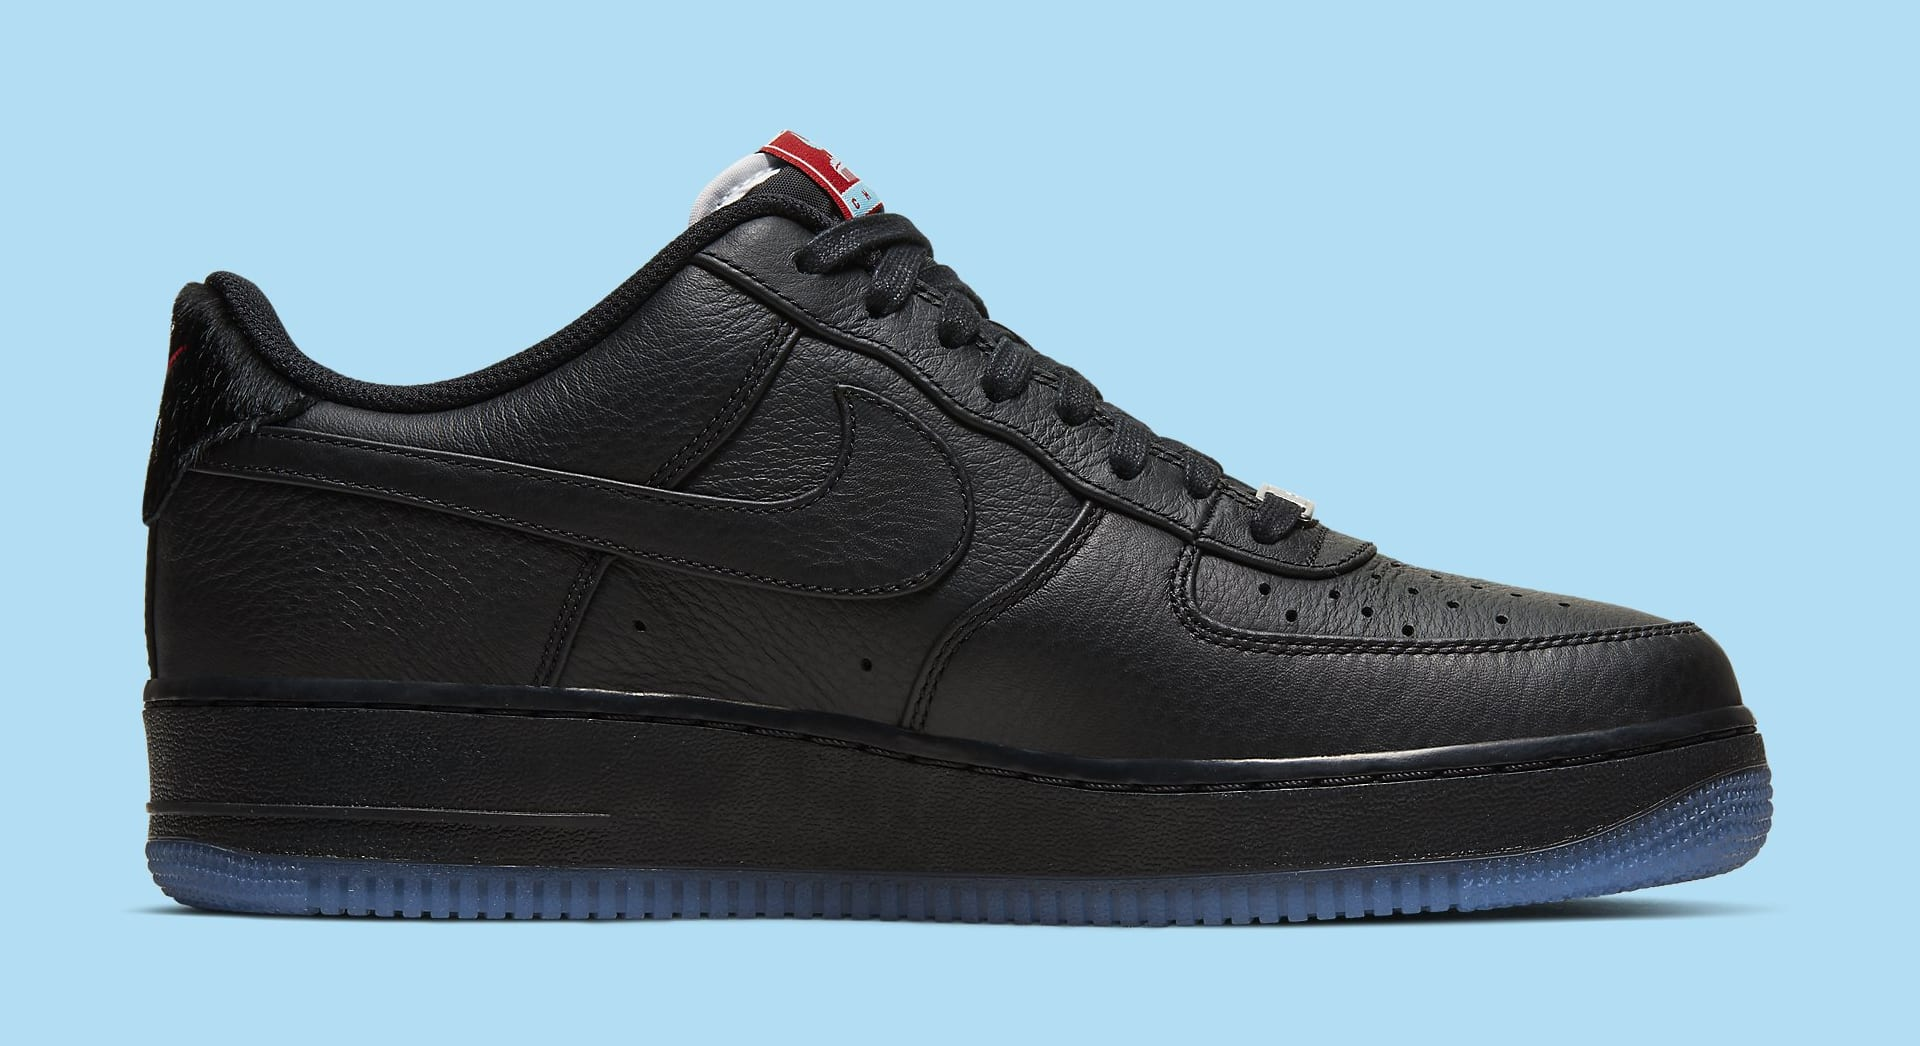 nike-air-force-1-low-chicago-ct1520-001-medial